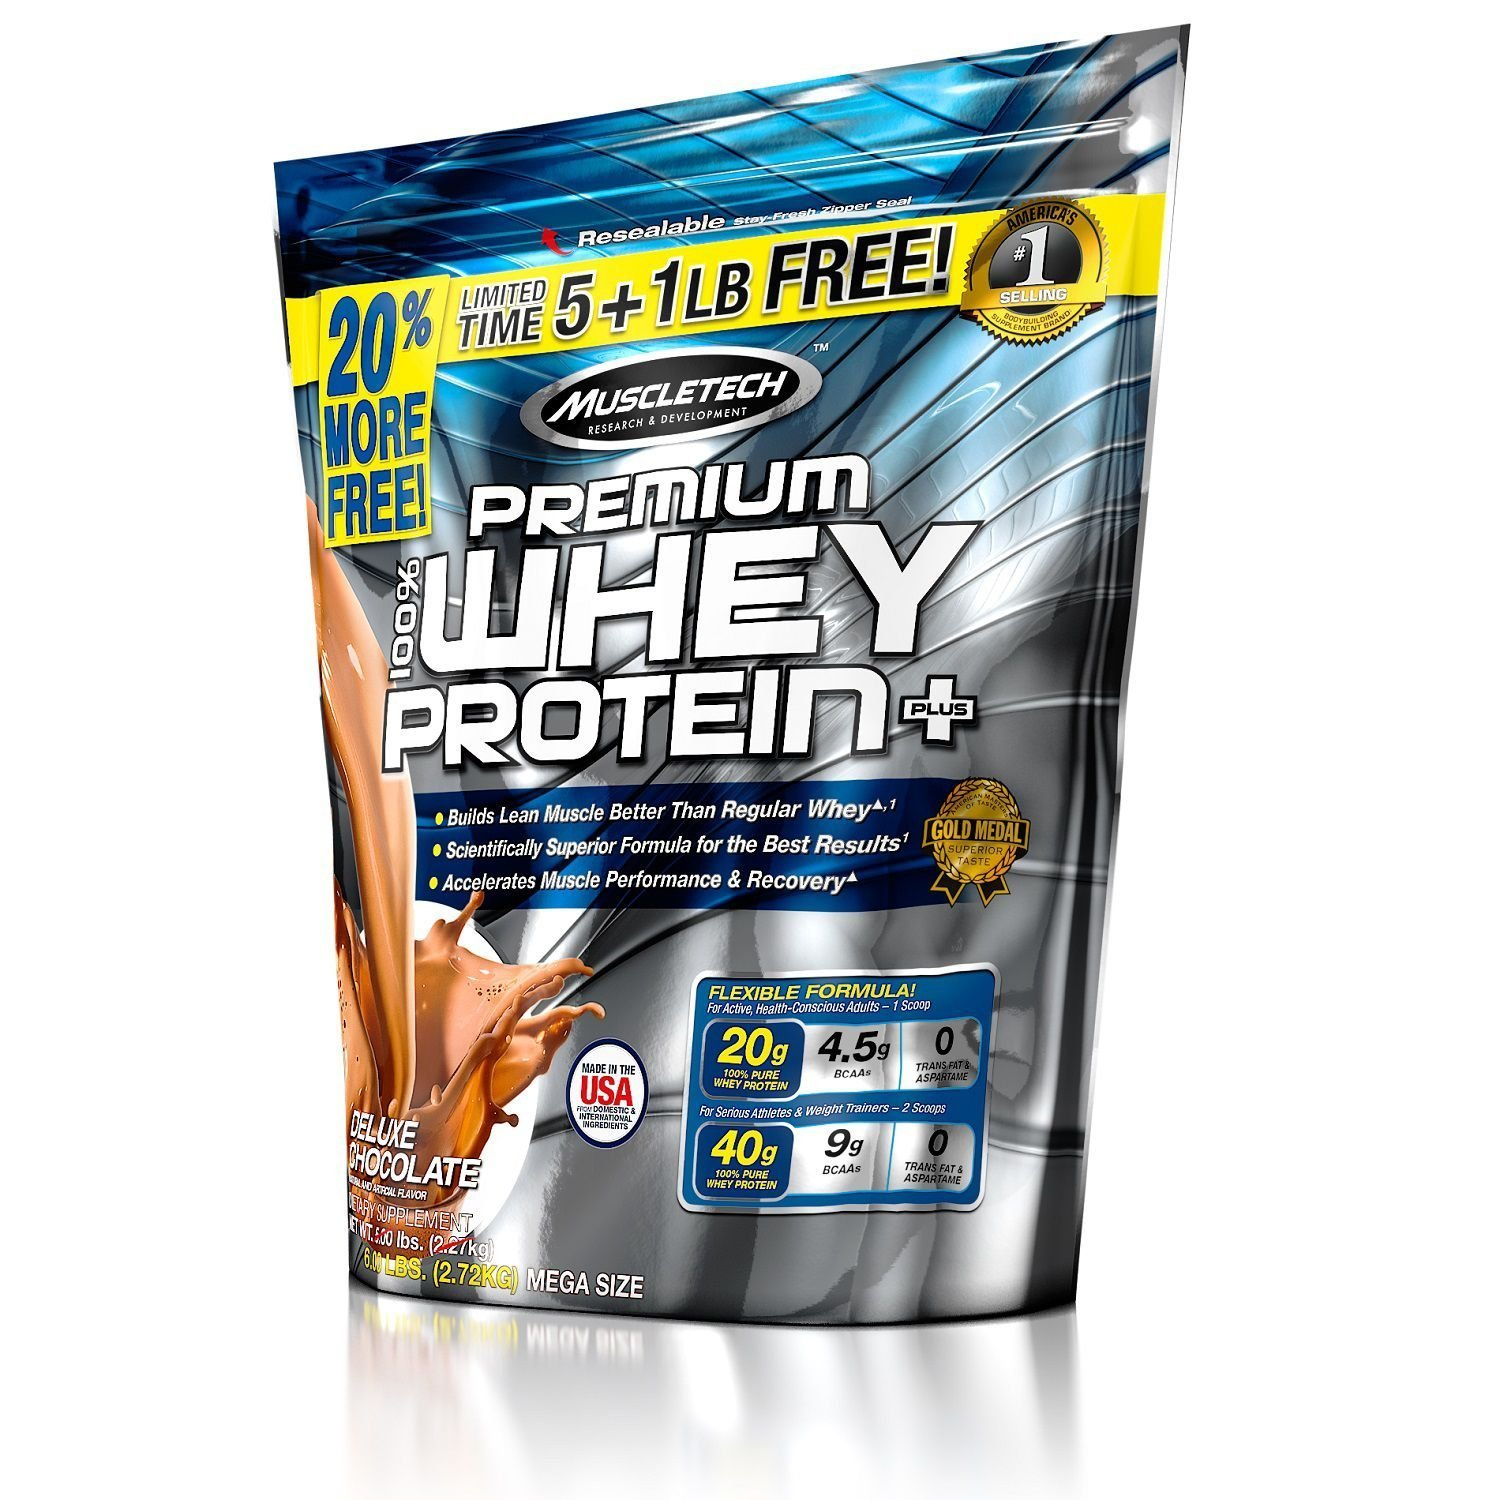 Mt Premium whey Malaysia Protein supplement.jpg